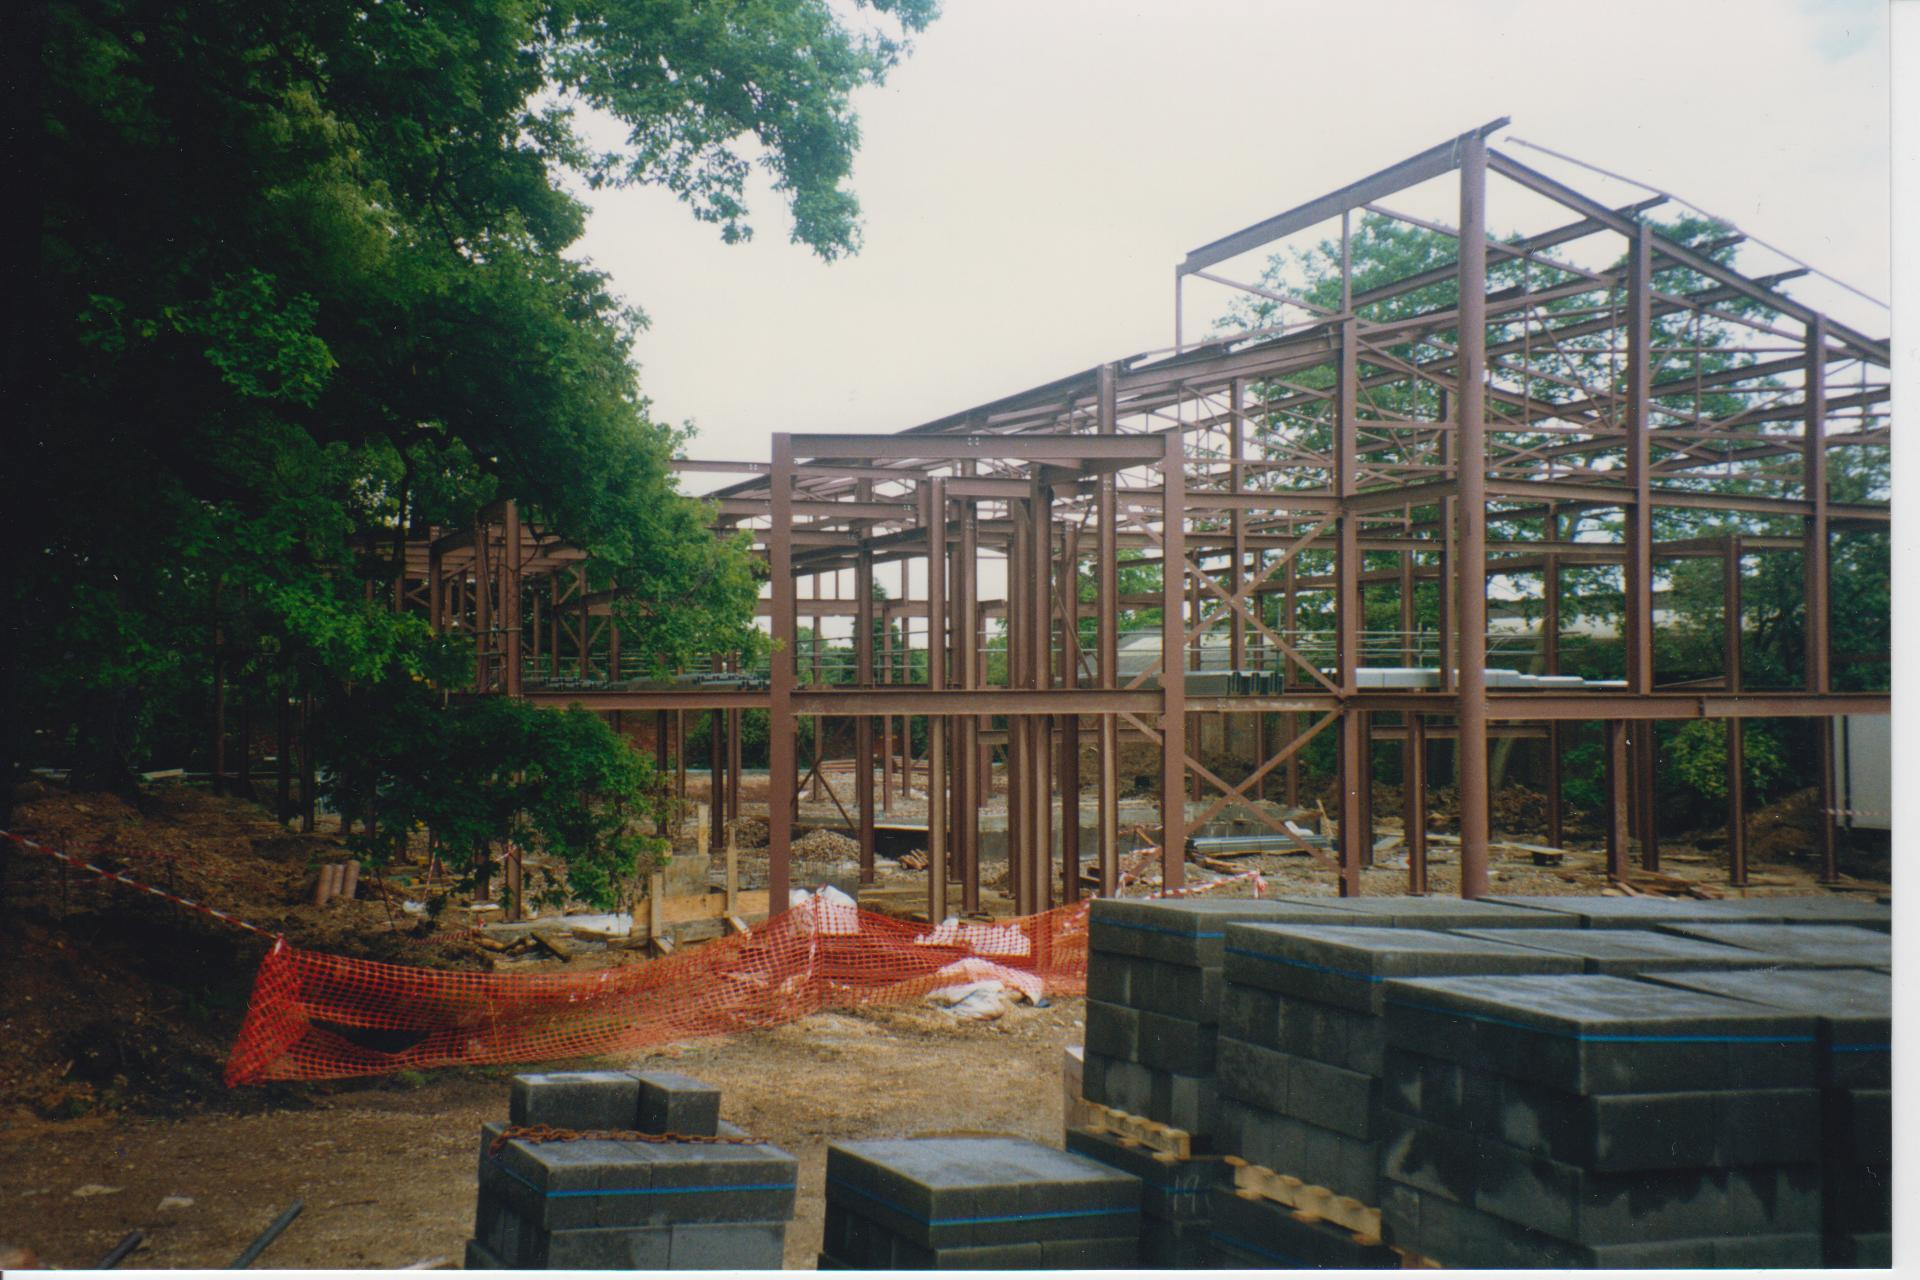 1993/4: The Rayne theatre in its infancy